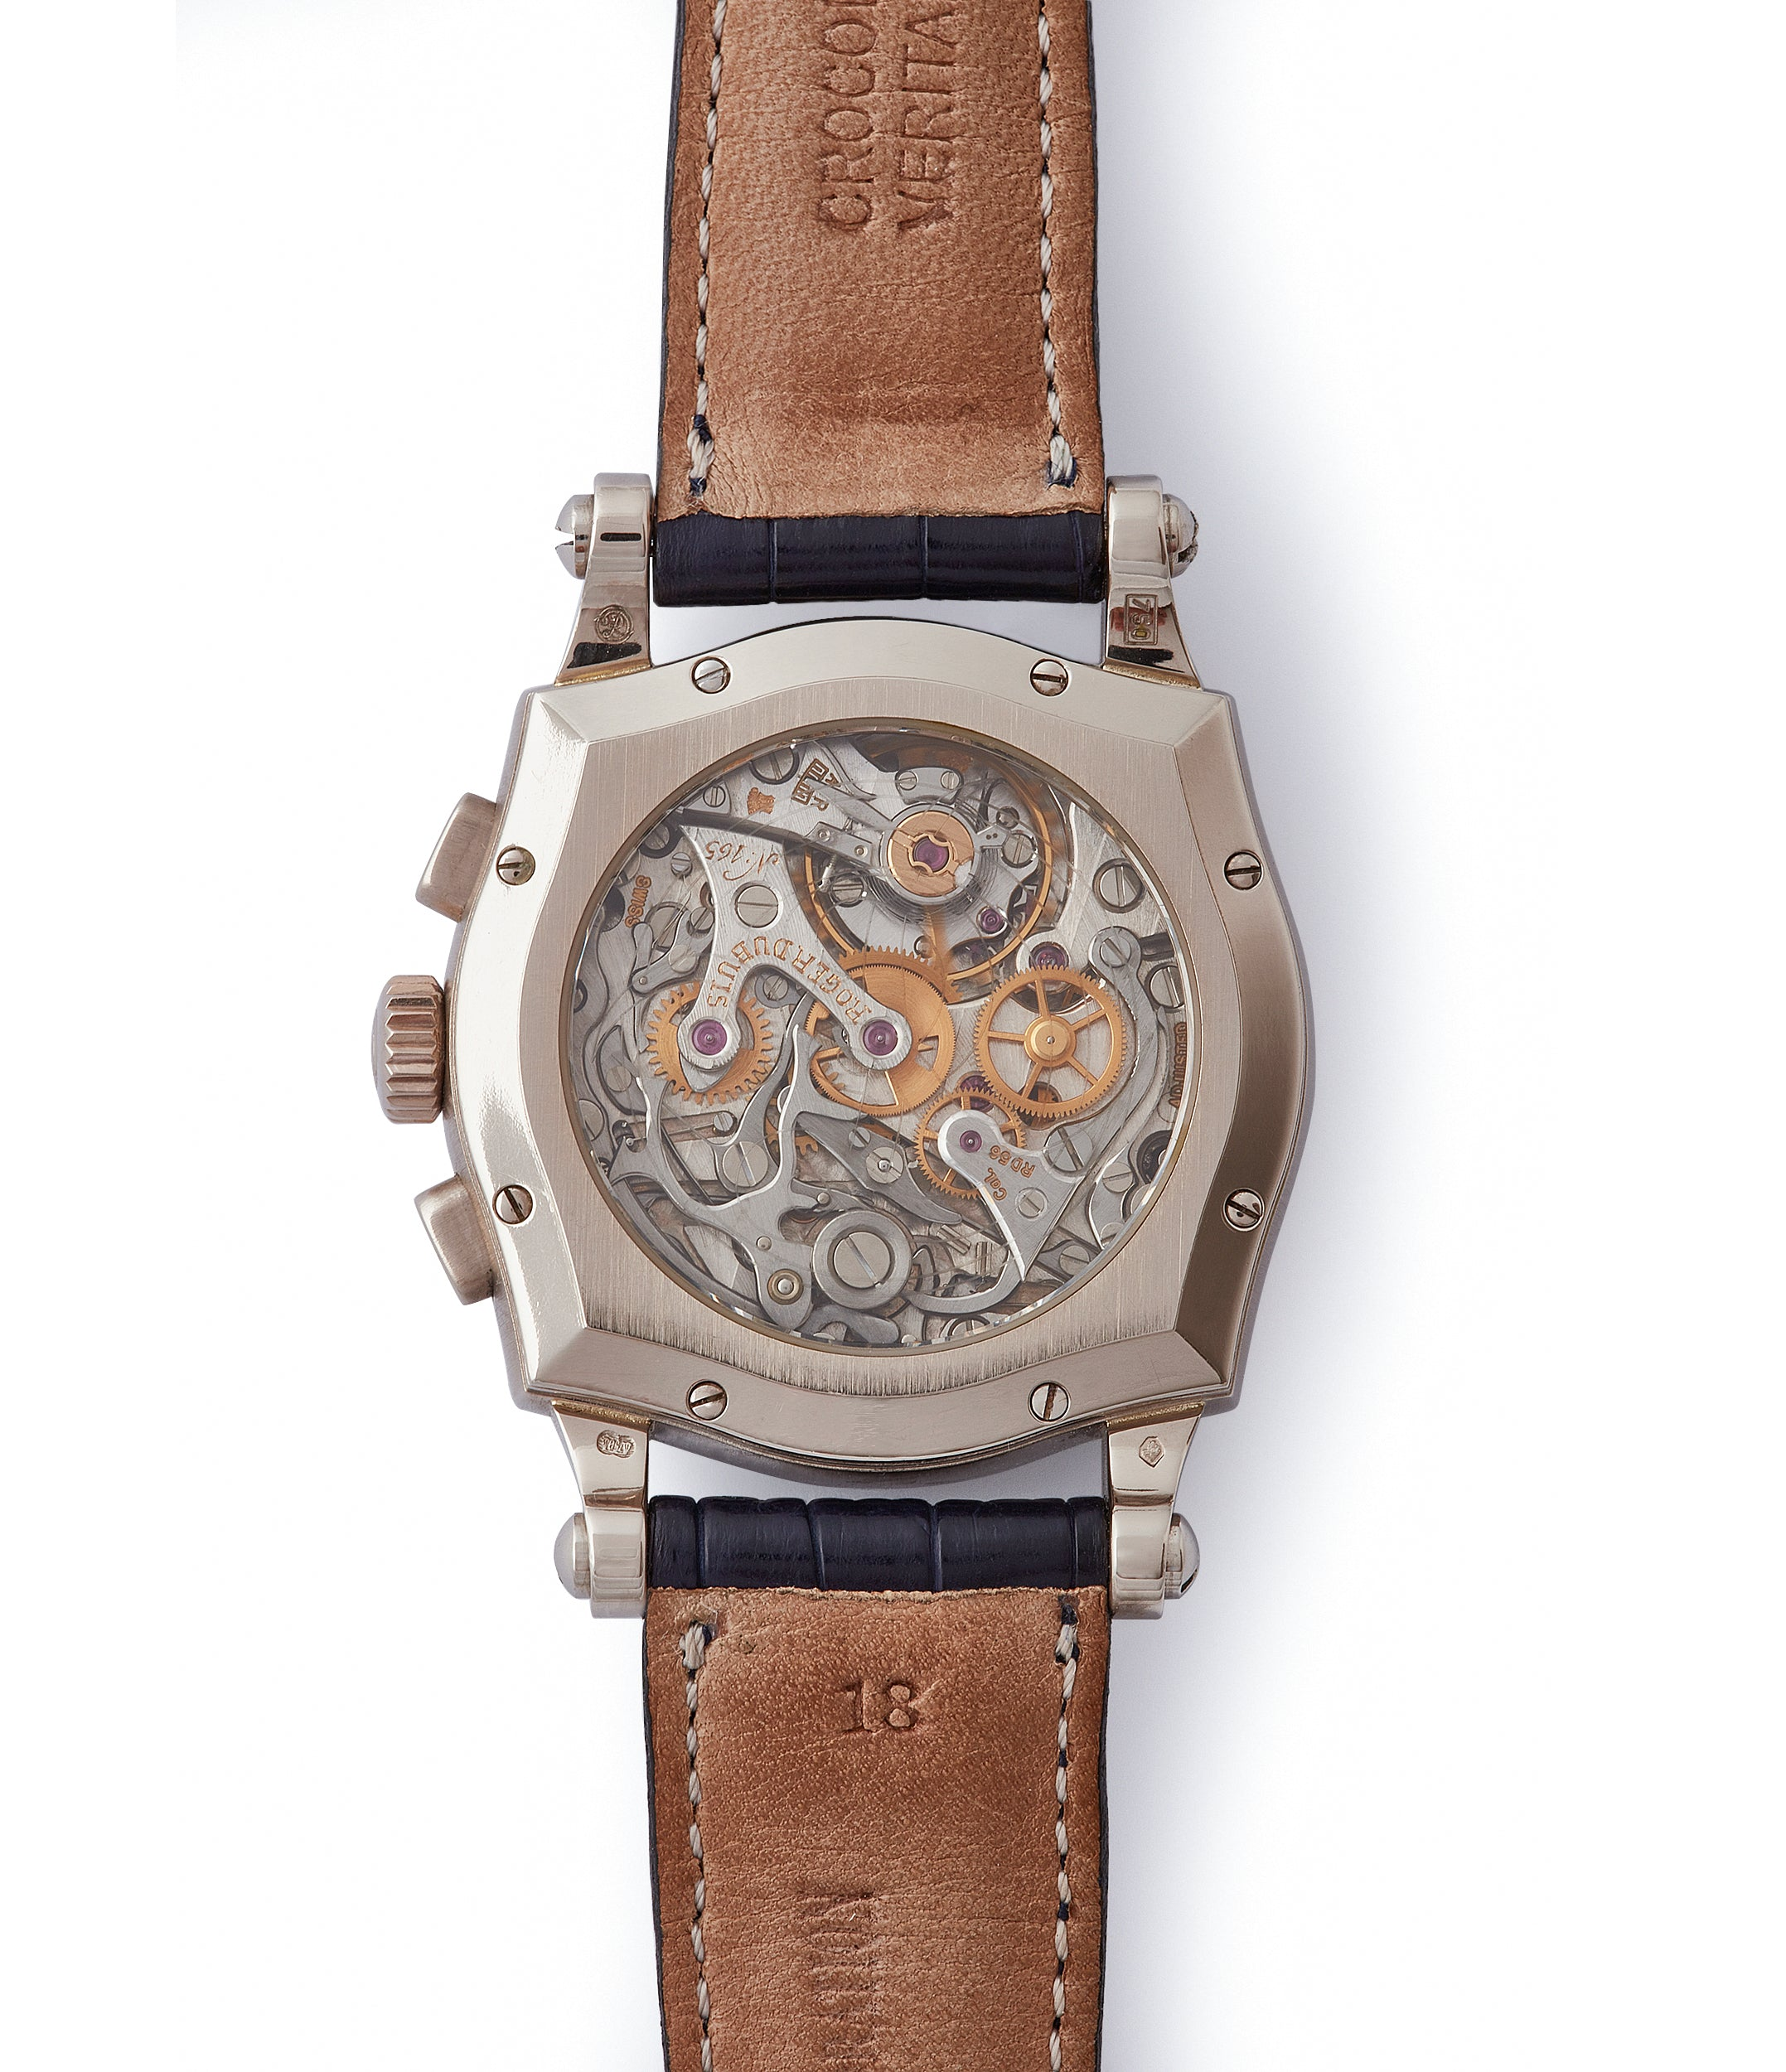 mechanical Sympathie Chronograph Roger Dubuis S37 Limited Edition white gold dress watch from independent watchmaker for sale online at A Collected Man London UK specialist of rare watches